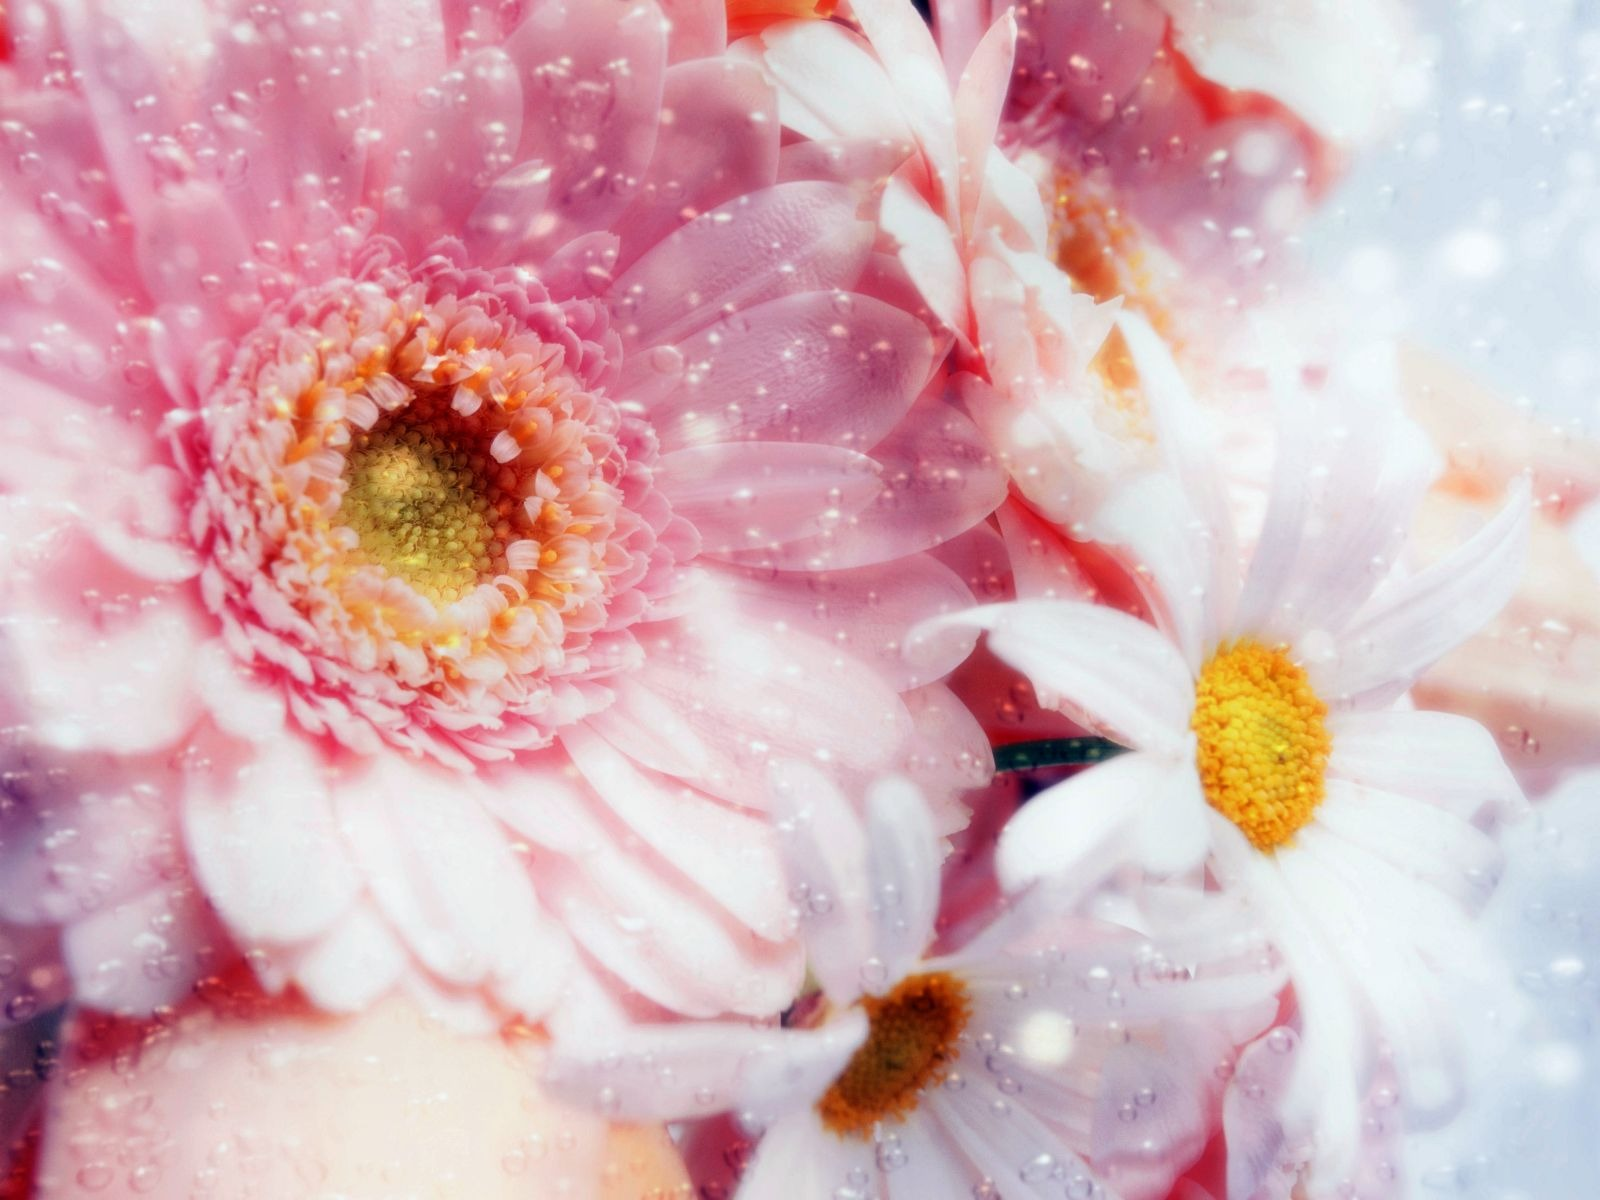 Pink flower wallpaper wallpapers for free download about 3540 dreams pink flowers wallpaper flowers nature mightylinksfo Image collections